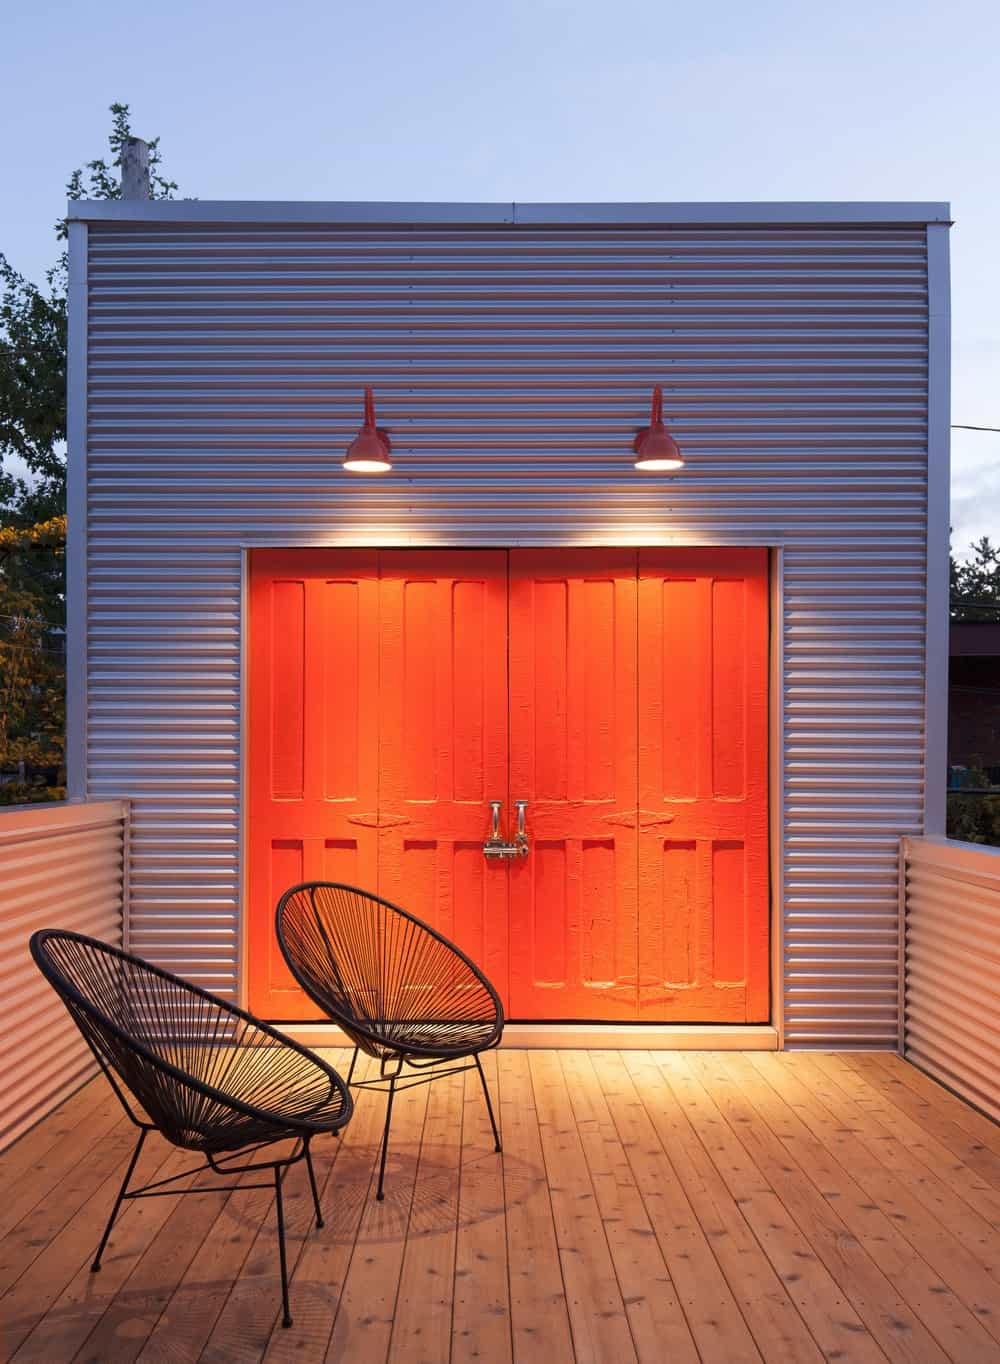 A terrace overlooks the area features a hardwood flooring and is lighted by a pair of wall lights and has a contemporary orange doors. Photo Credit: Maxime Brouillet